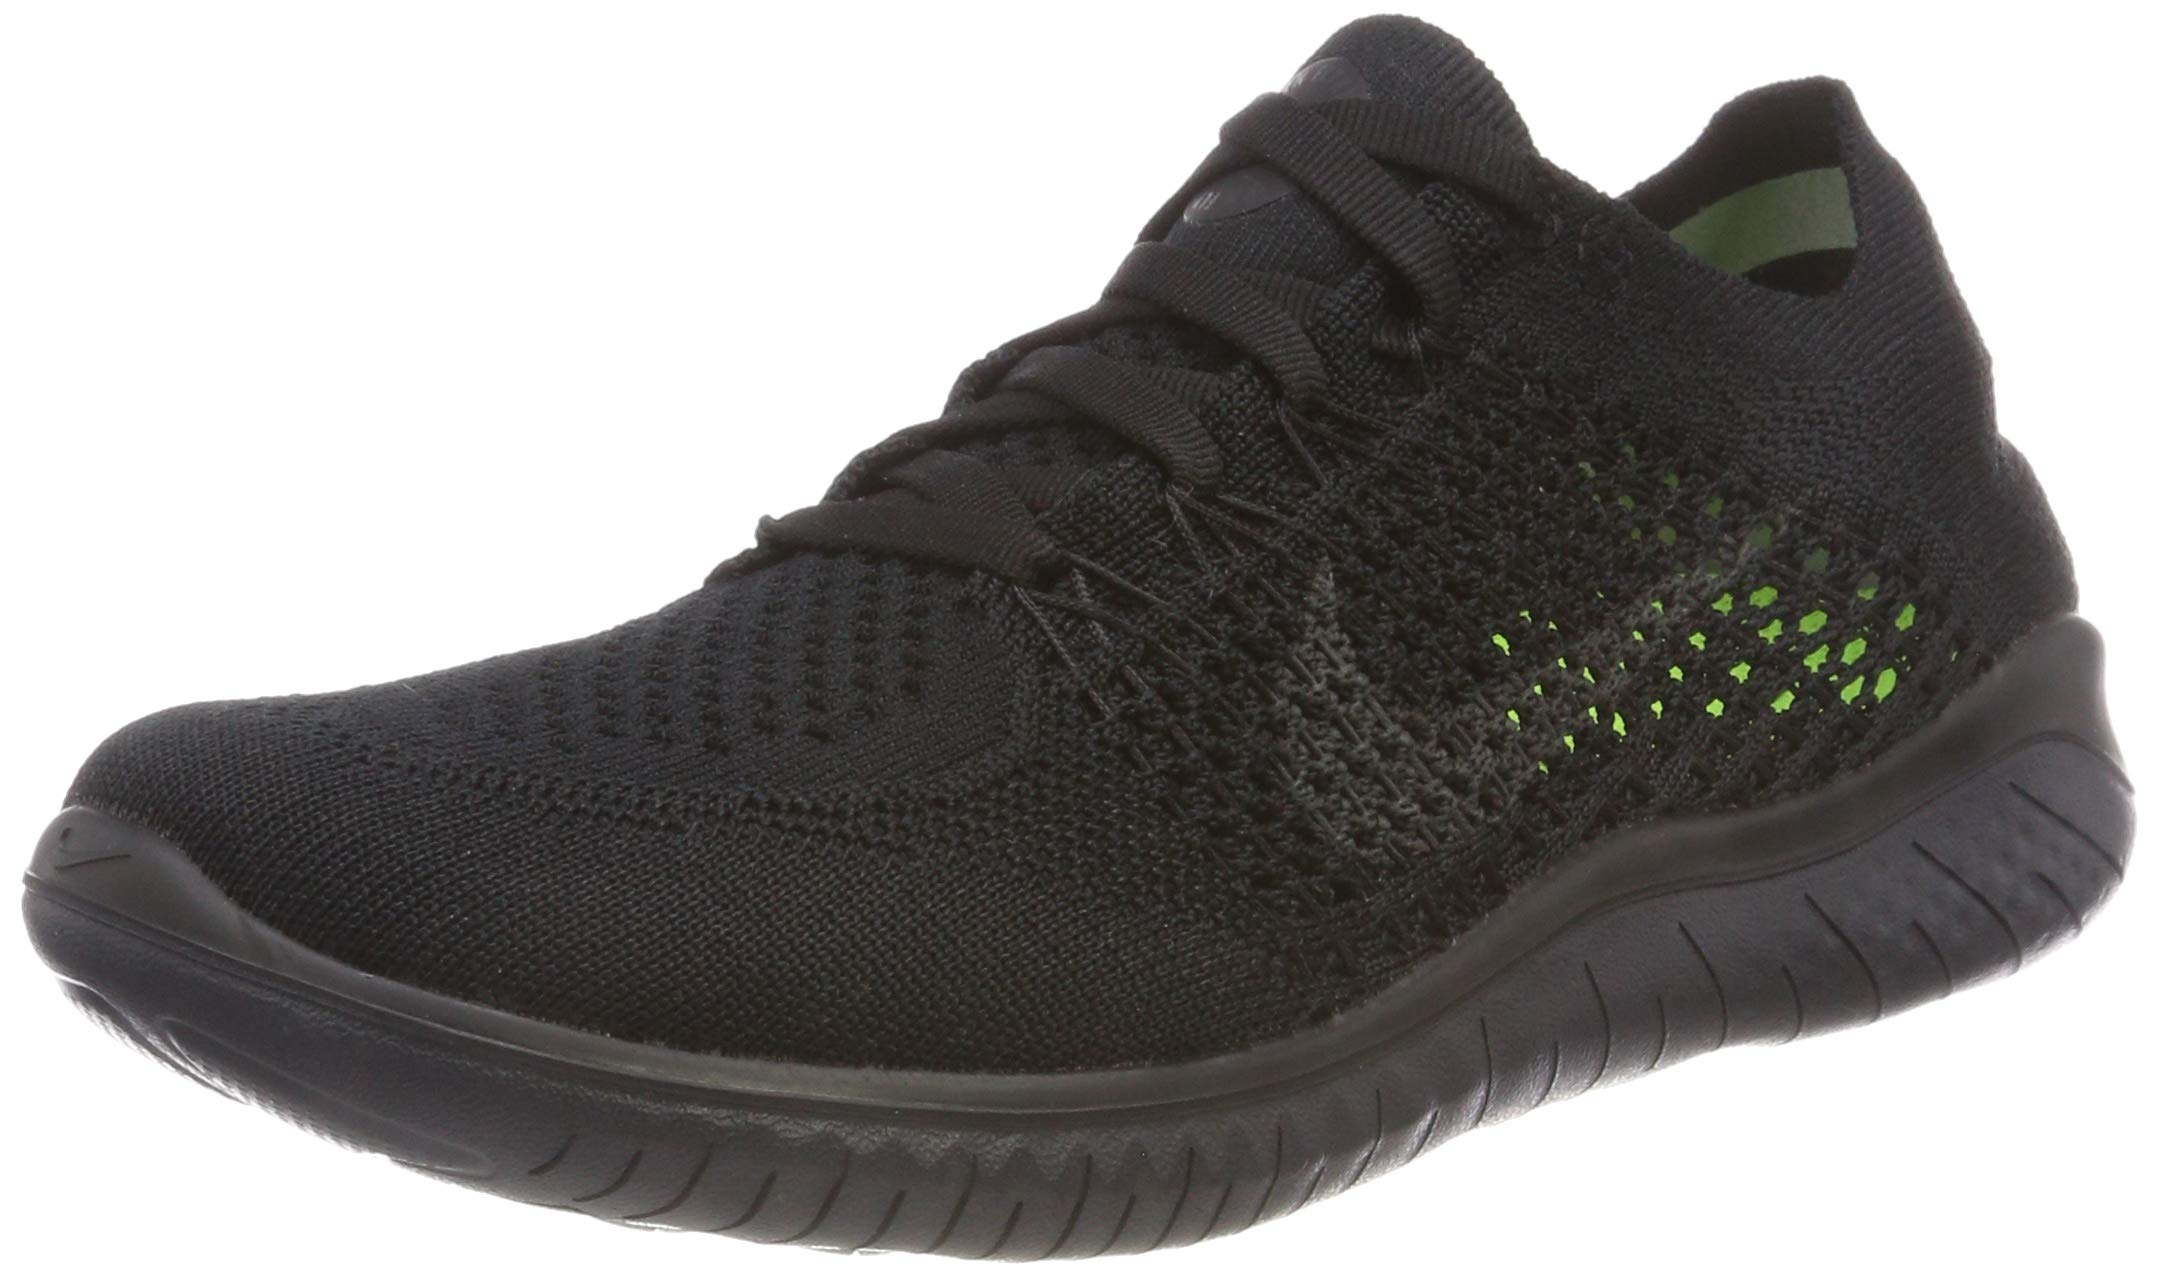 Nike Women's Free Rn Flyknit 2018 Running Shoe nk942839 002 (7.5 B(M) US) Black/Anthracite